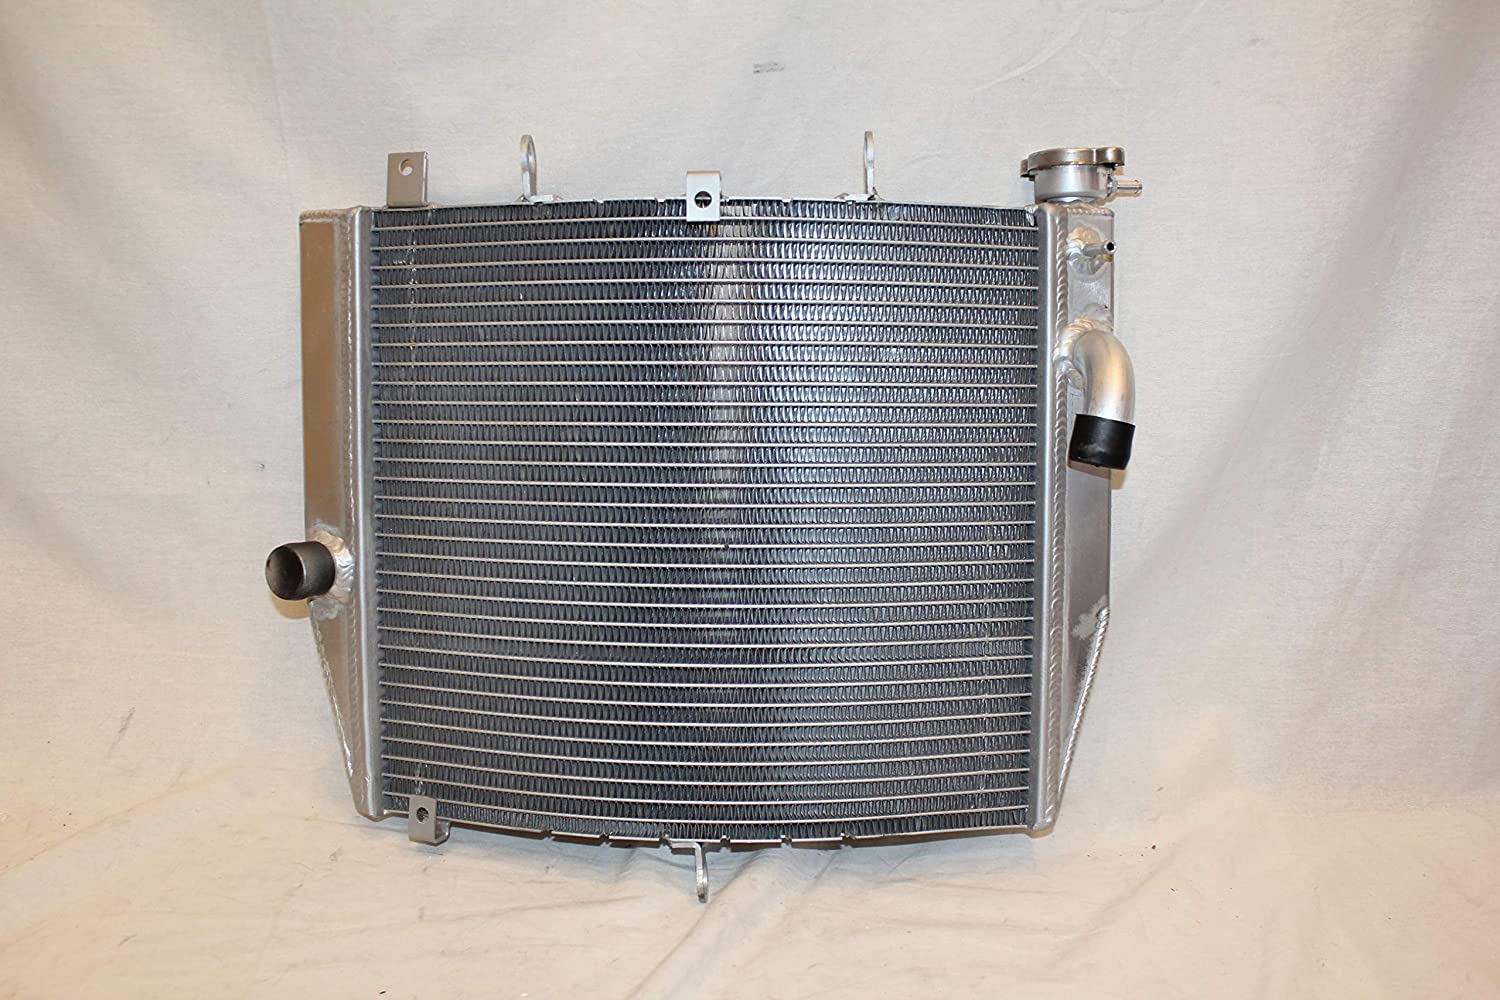 Amazon.com: ZPC Radiator for: Kawasaki Ninja ZX-10R ZX10RR ...